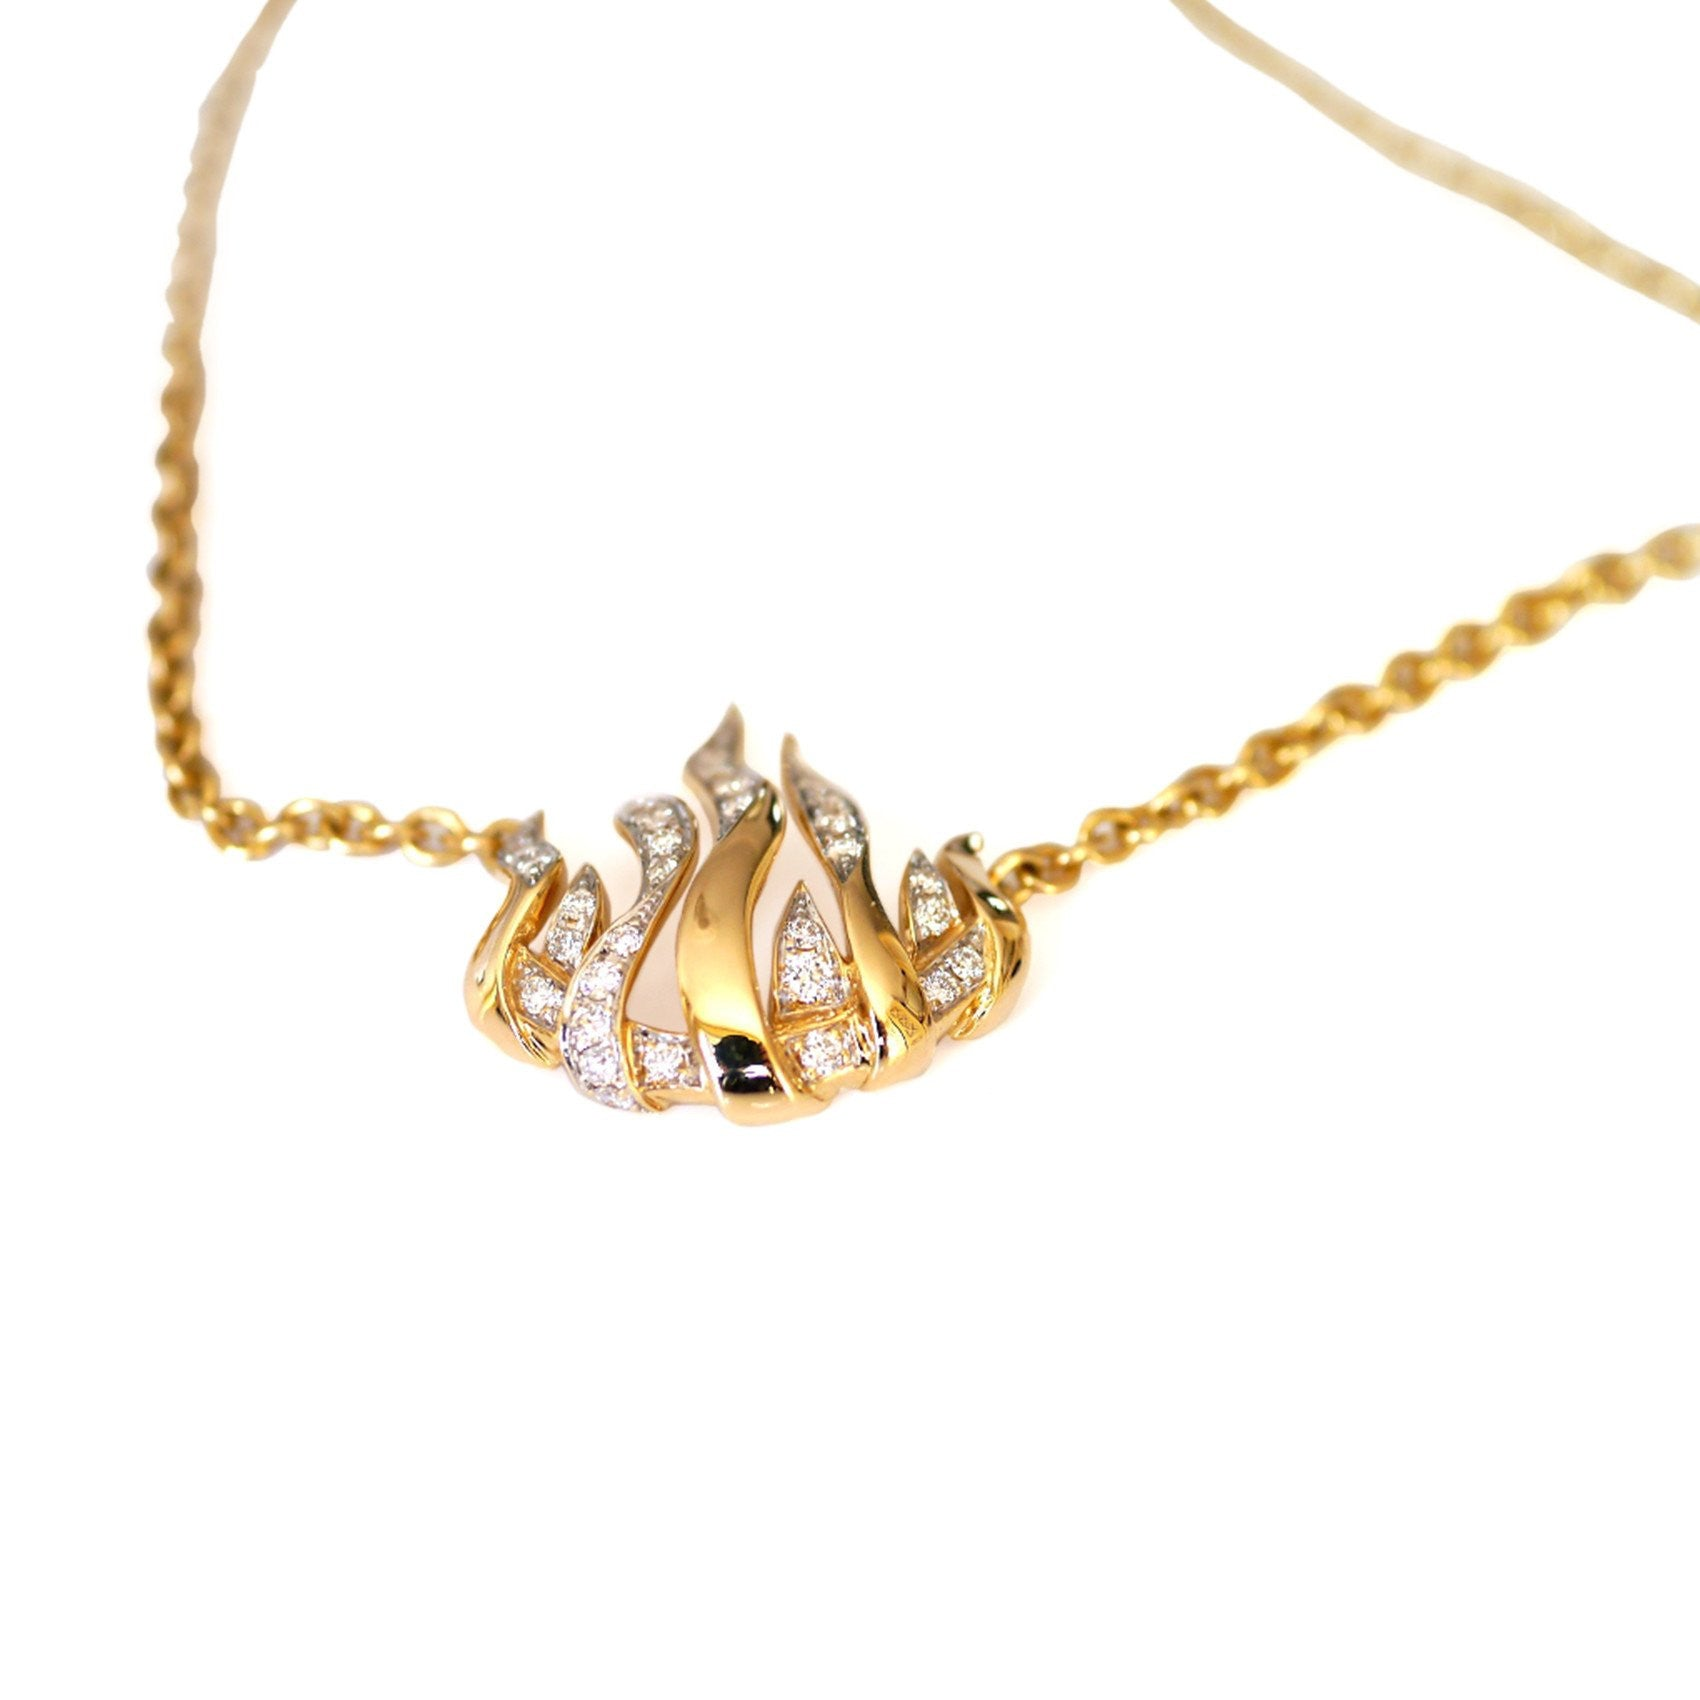 Garrard 'Fire of London' Diamond Necklace